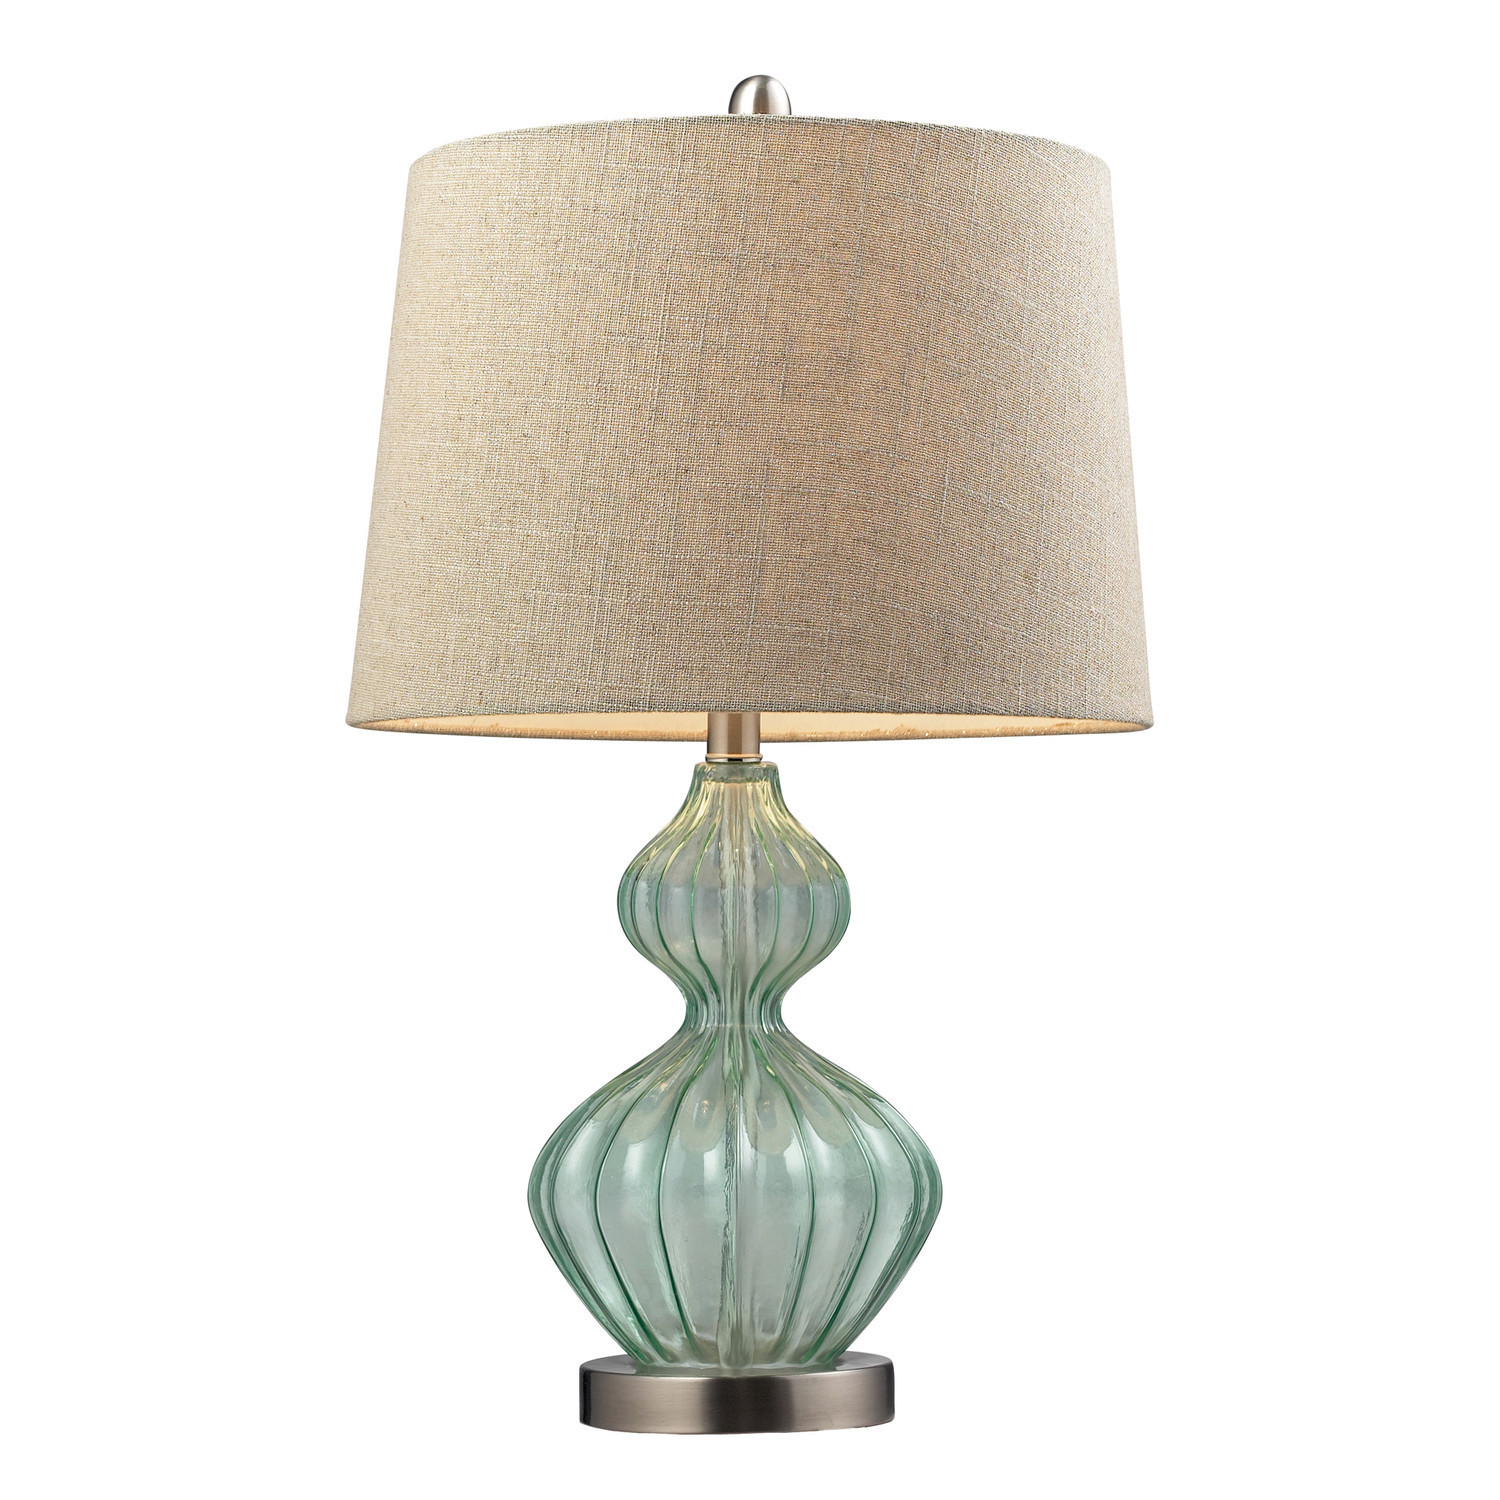 Turqoise Table Lamp with Empire Shade